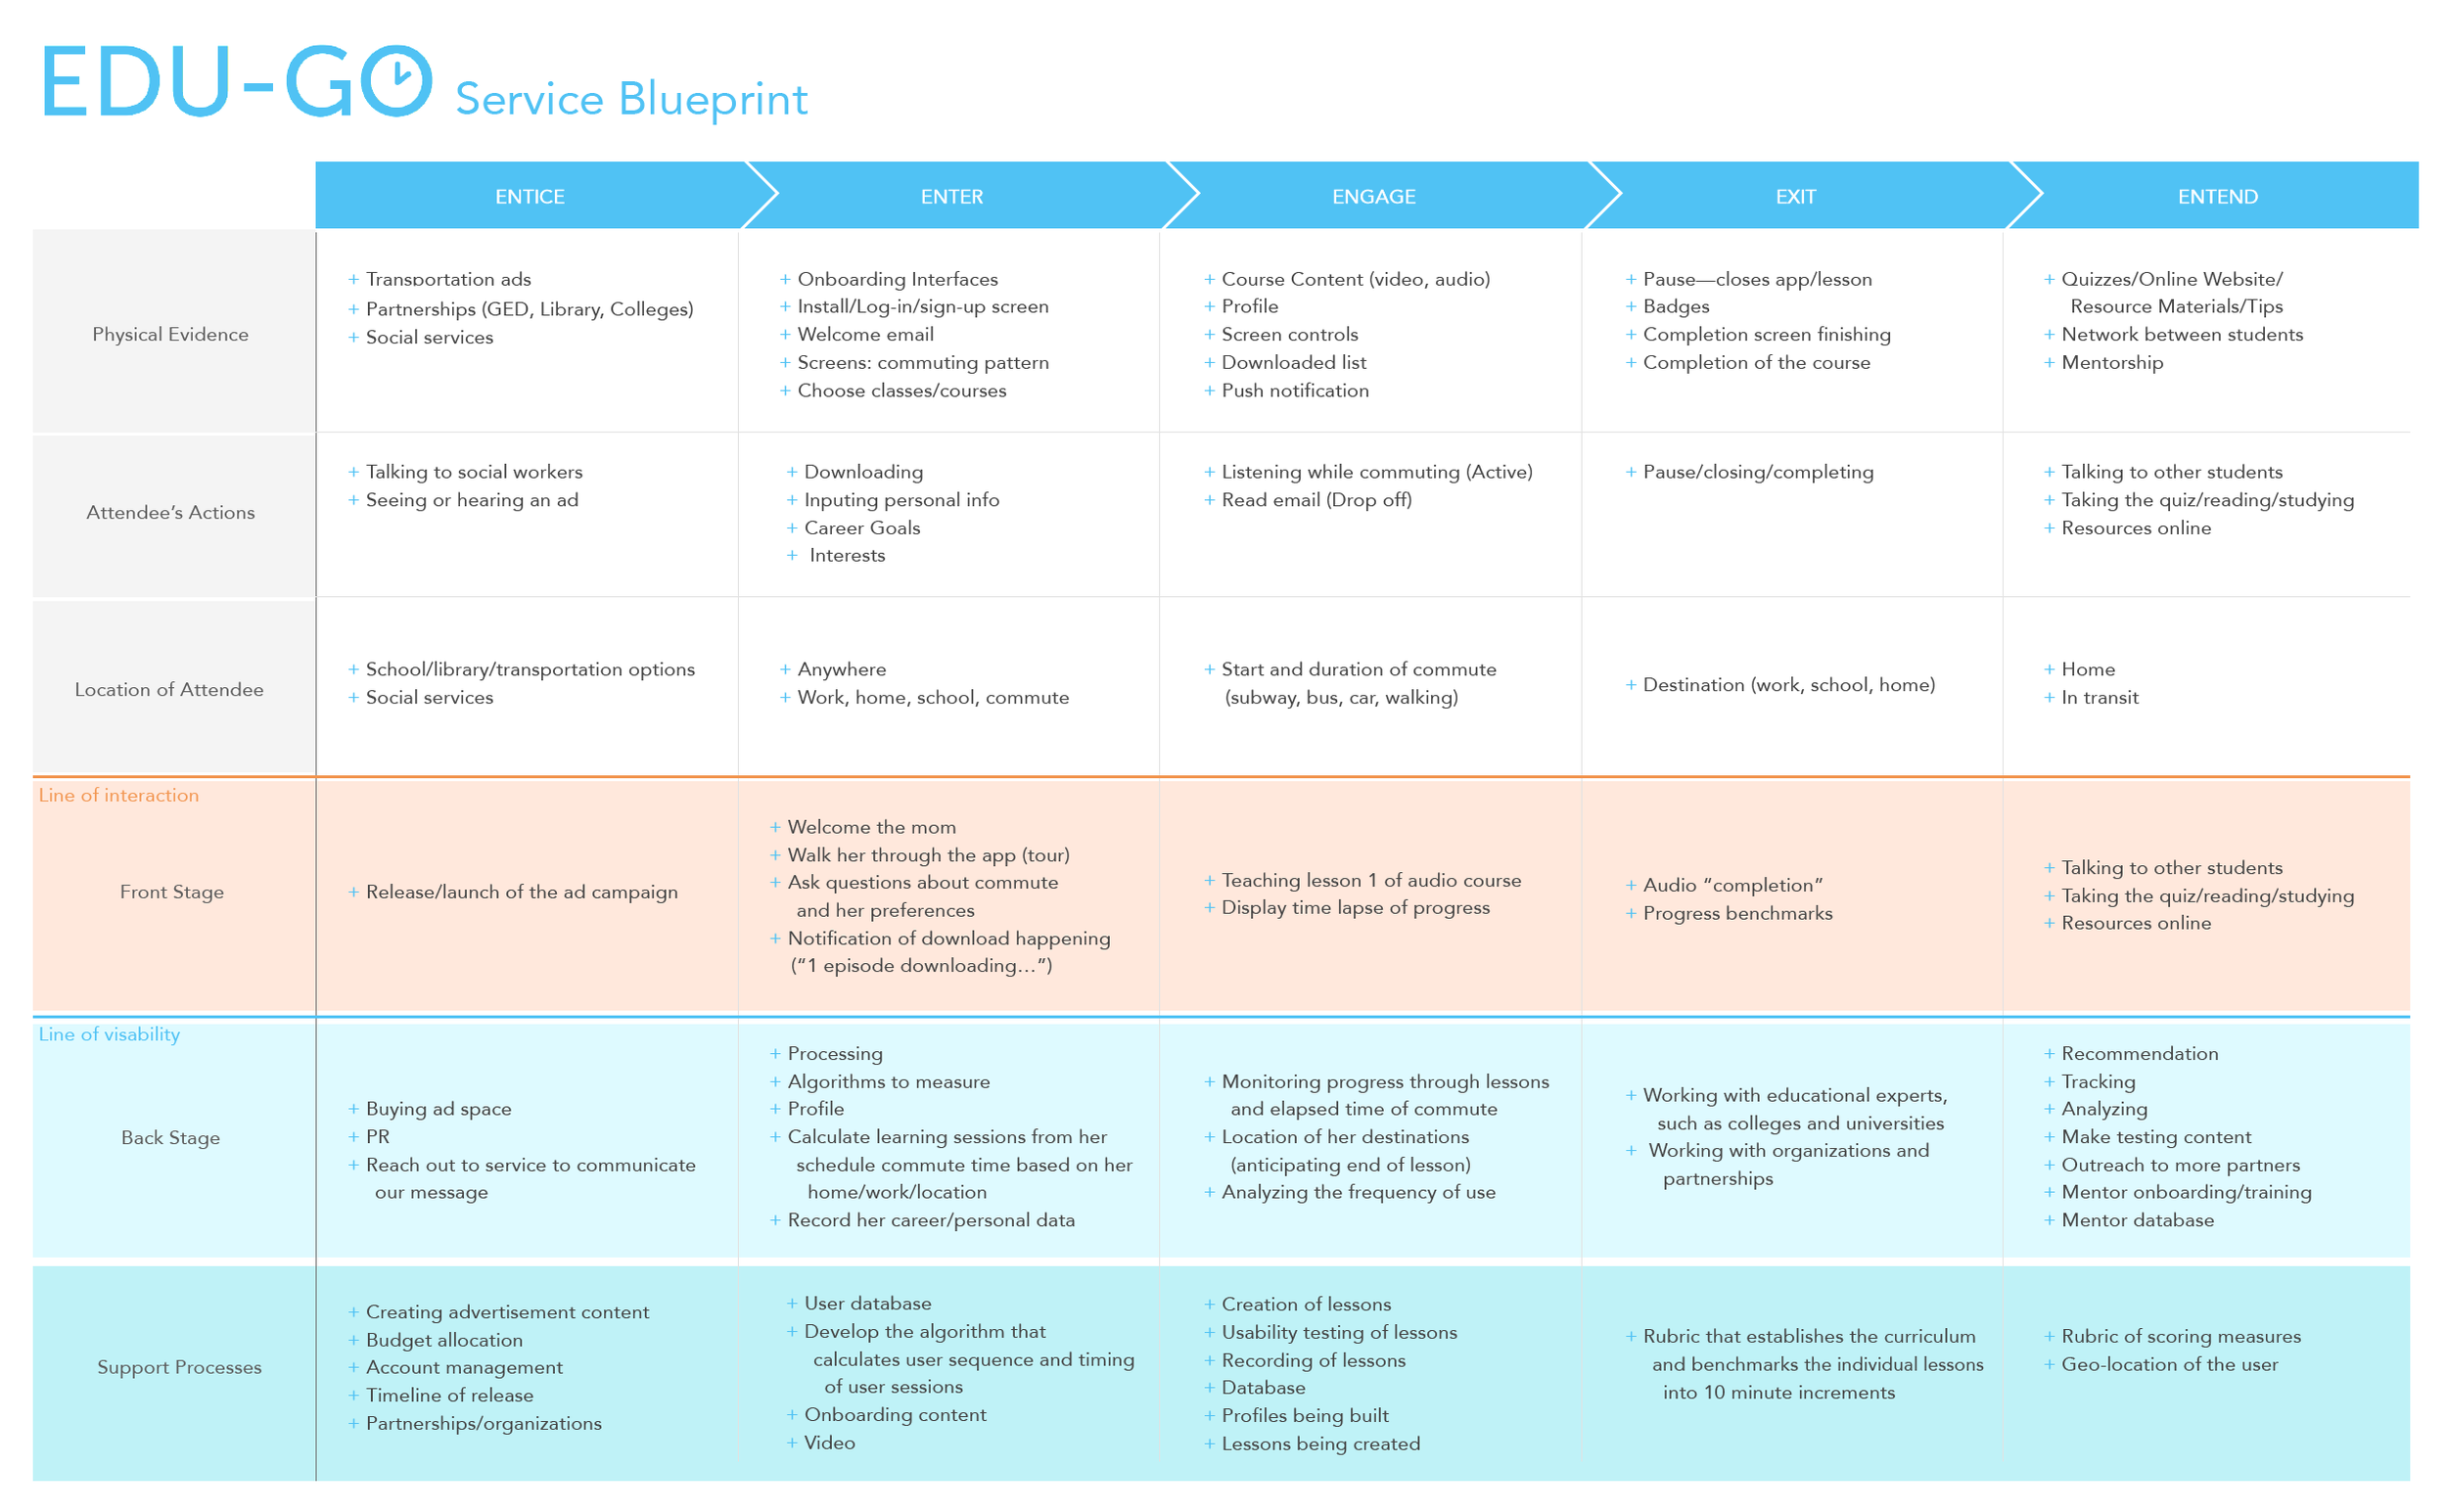 SERVICE BLUEPRINT: Mapping out how EDU-GO works